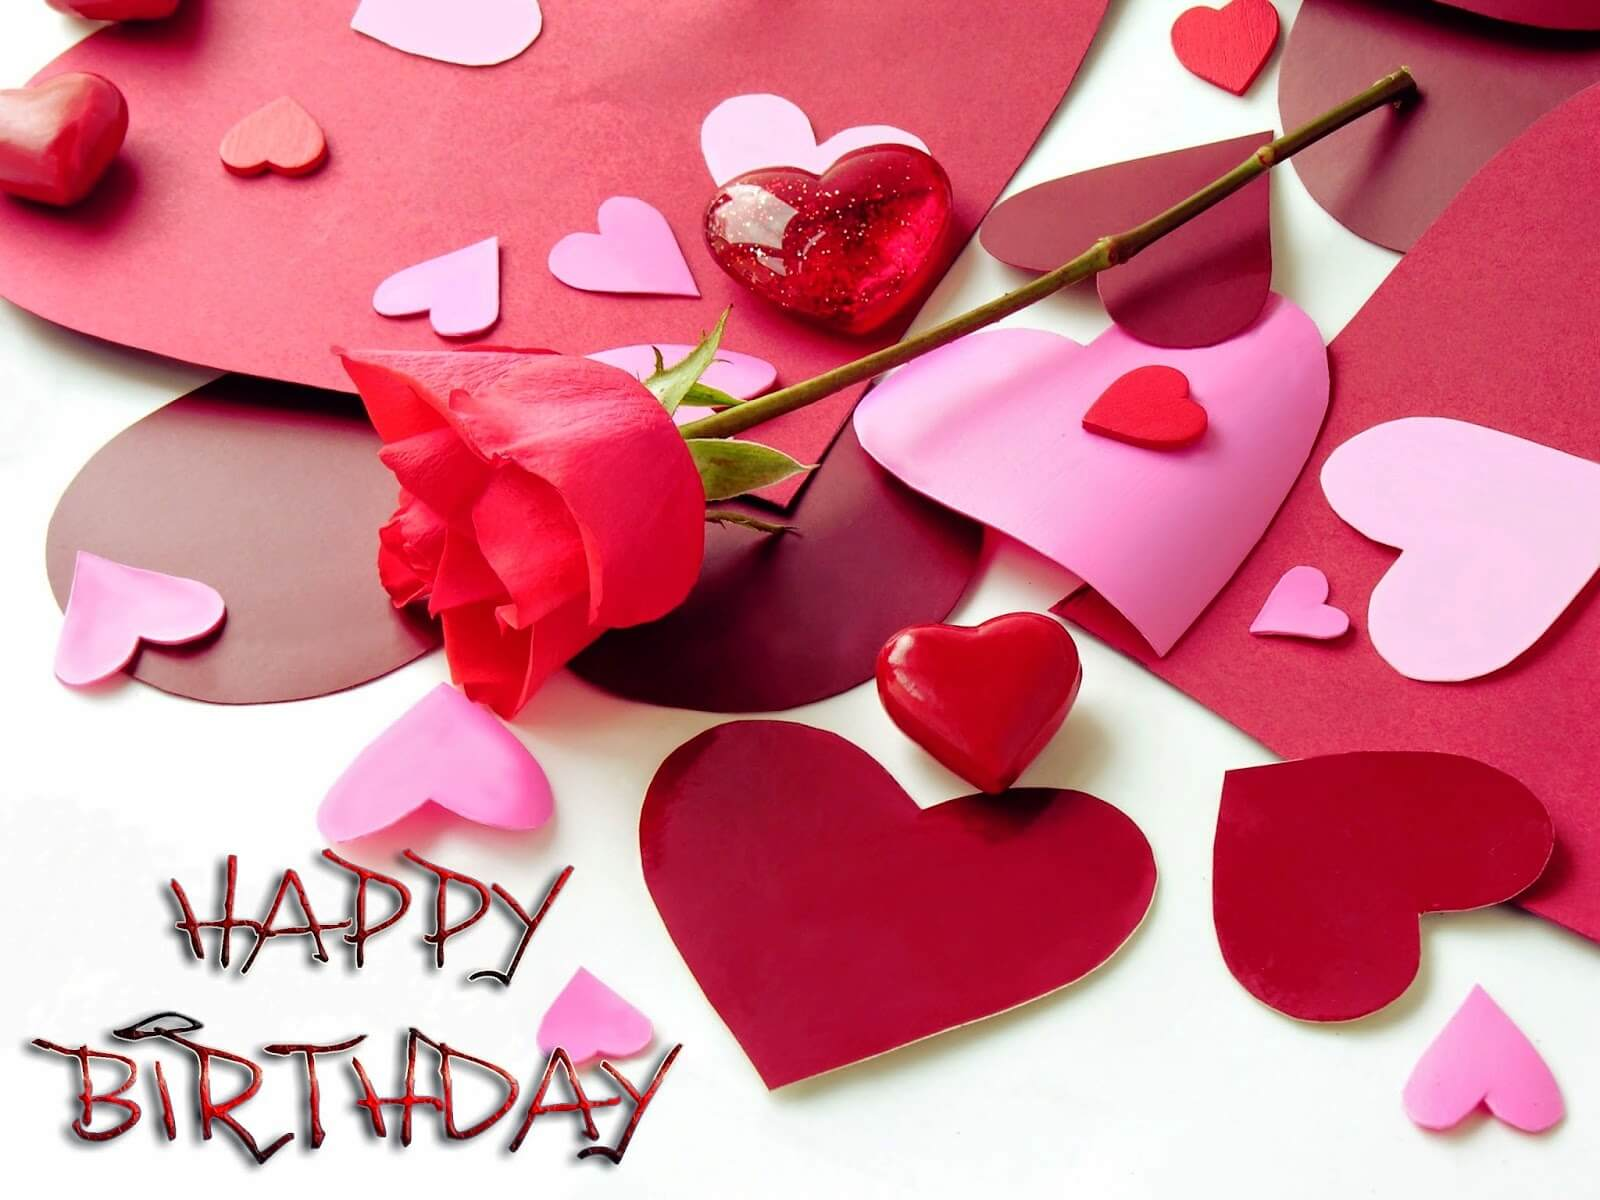 birthday message to a sweetheart ; special-happy-birthday-wishes-lover-2